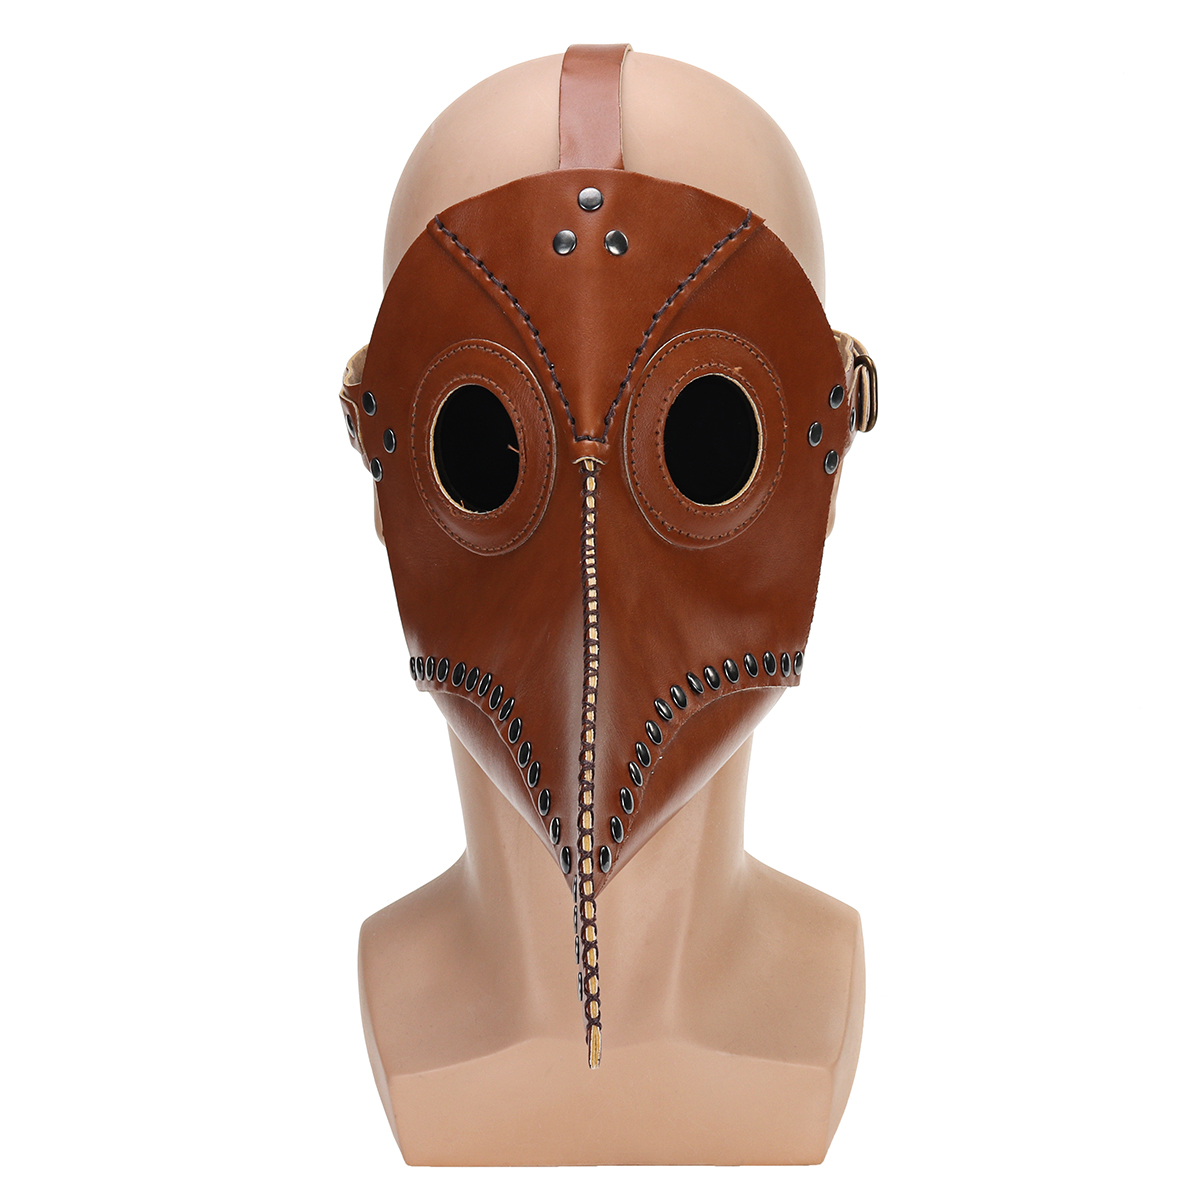 Steampunk Bird Beak Mask Retro Rivet Cosplay Leather Halloween